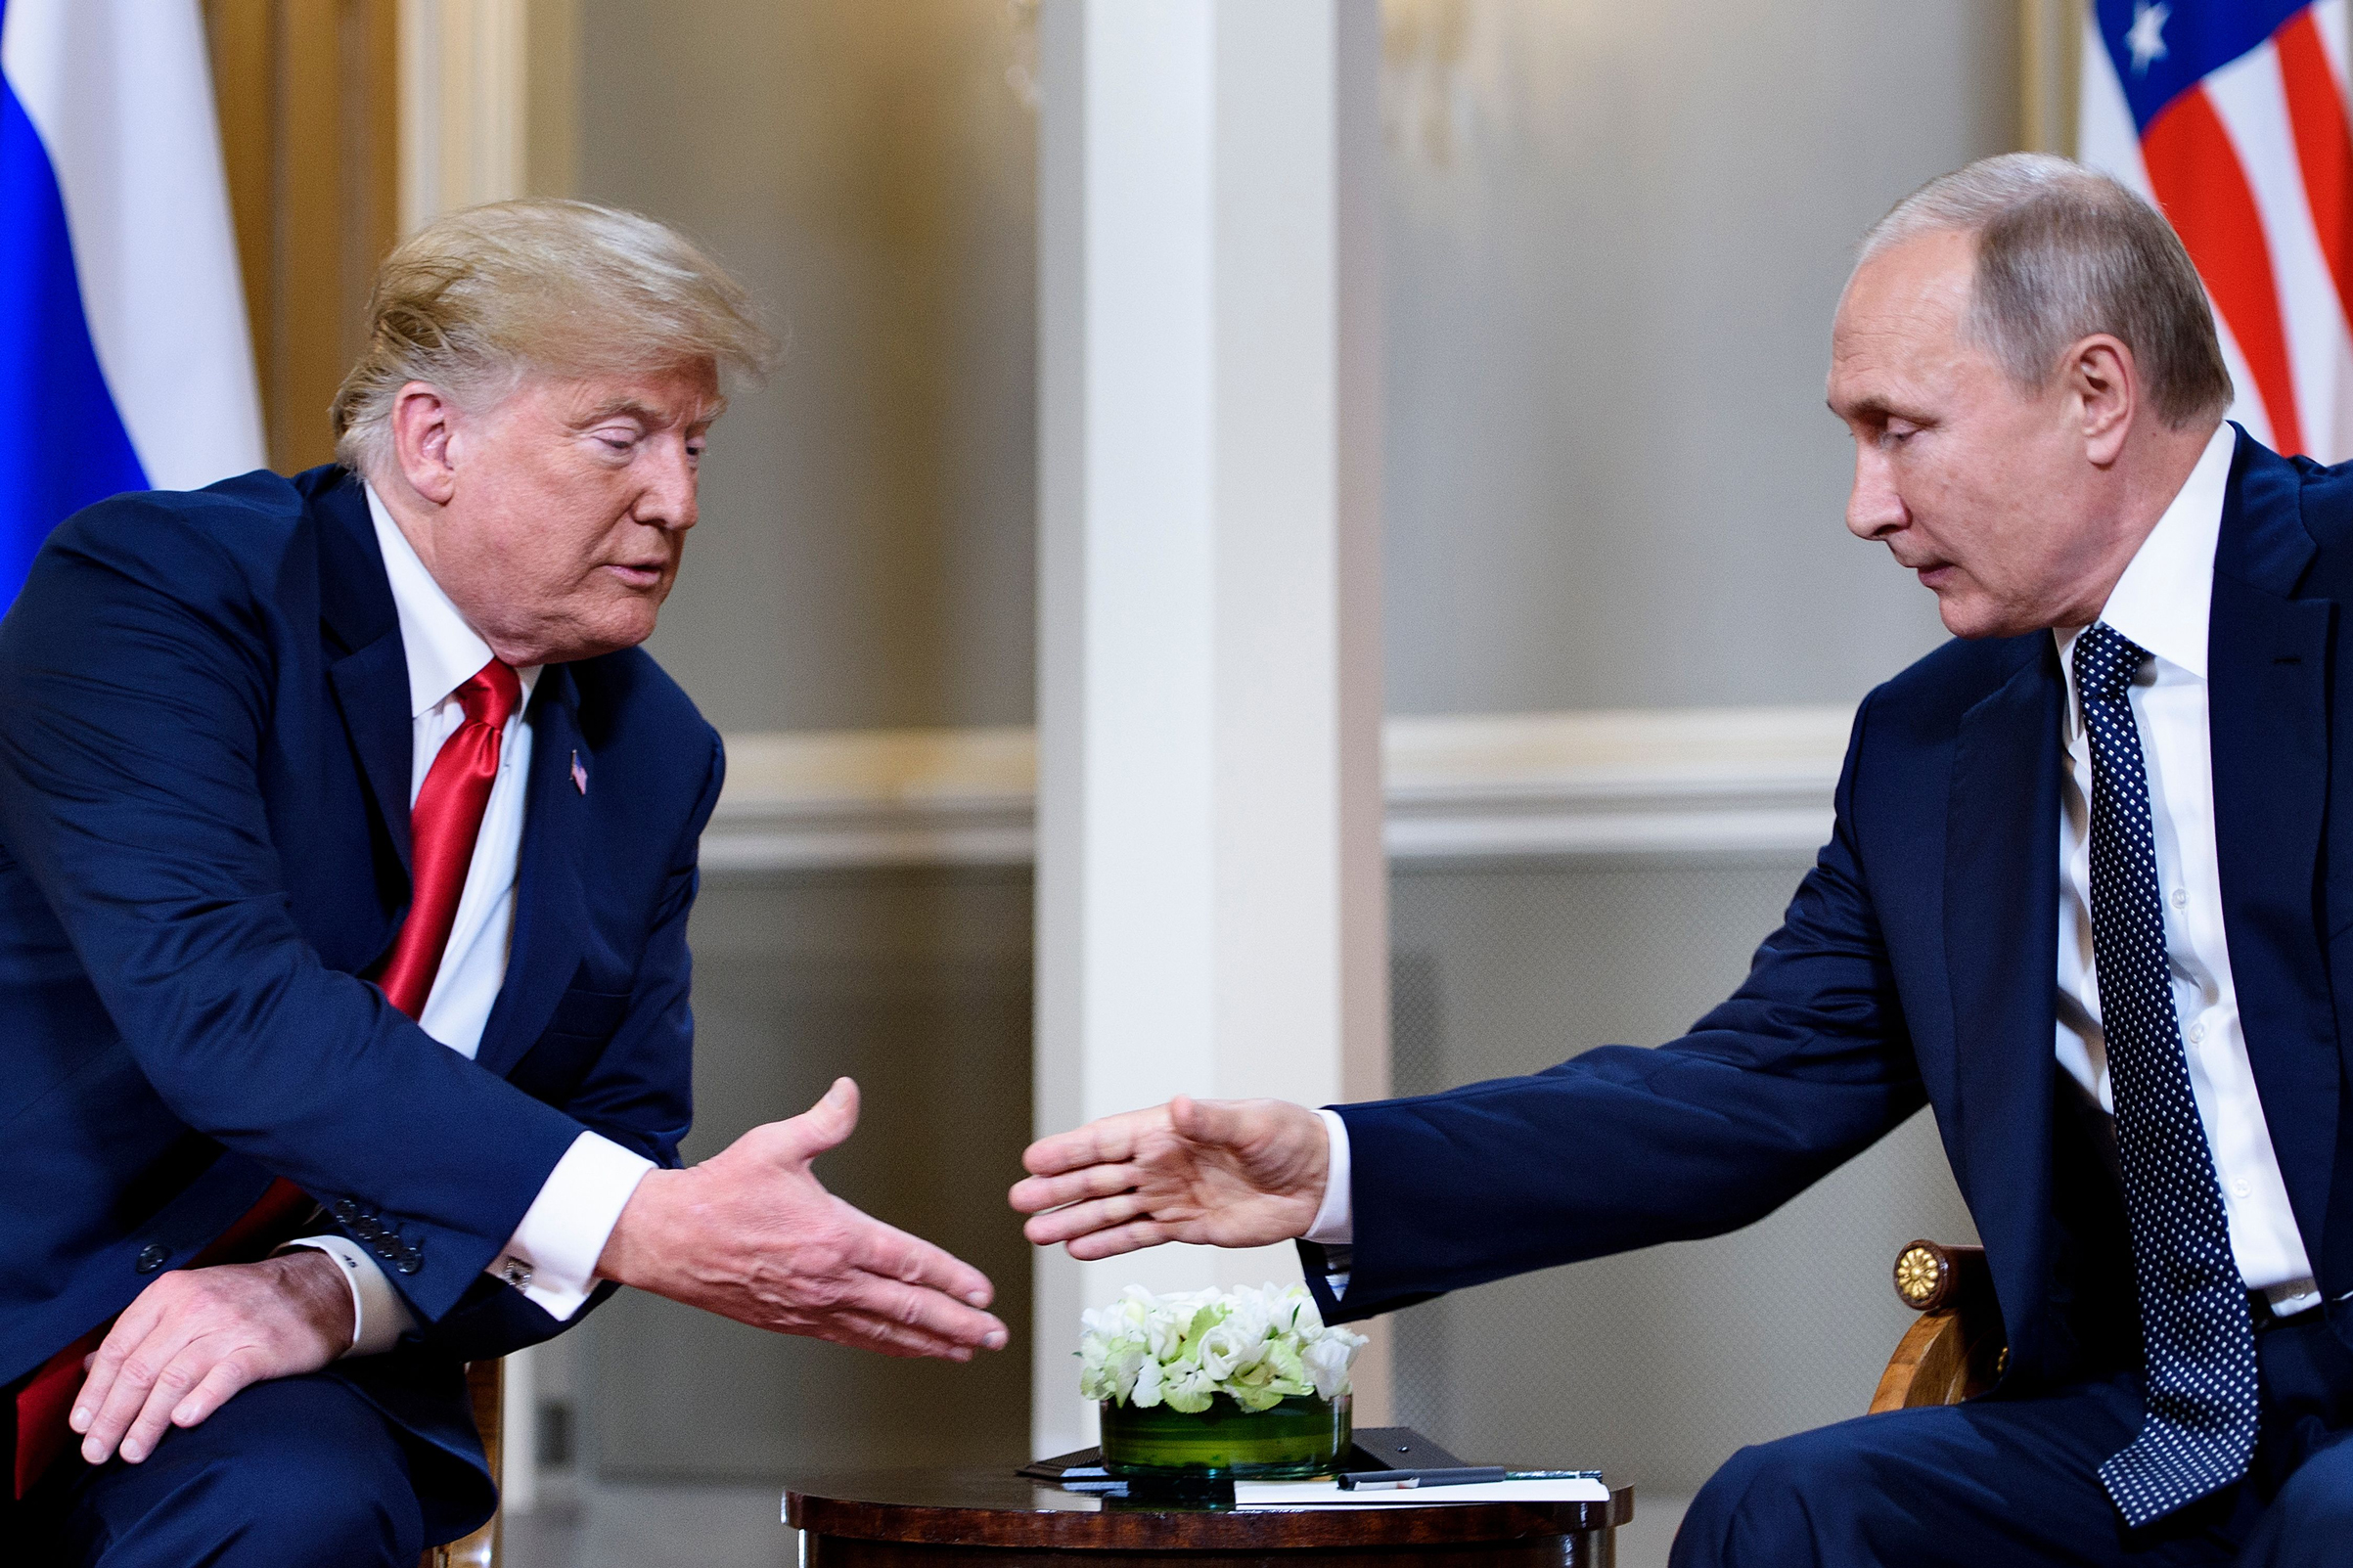 U.S. President Donald Trump (left) and Russian President Vladimir Putin reach to shake hands before a meeting in Helsinki, on July 16, 2018.